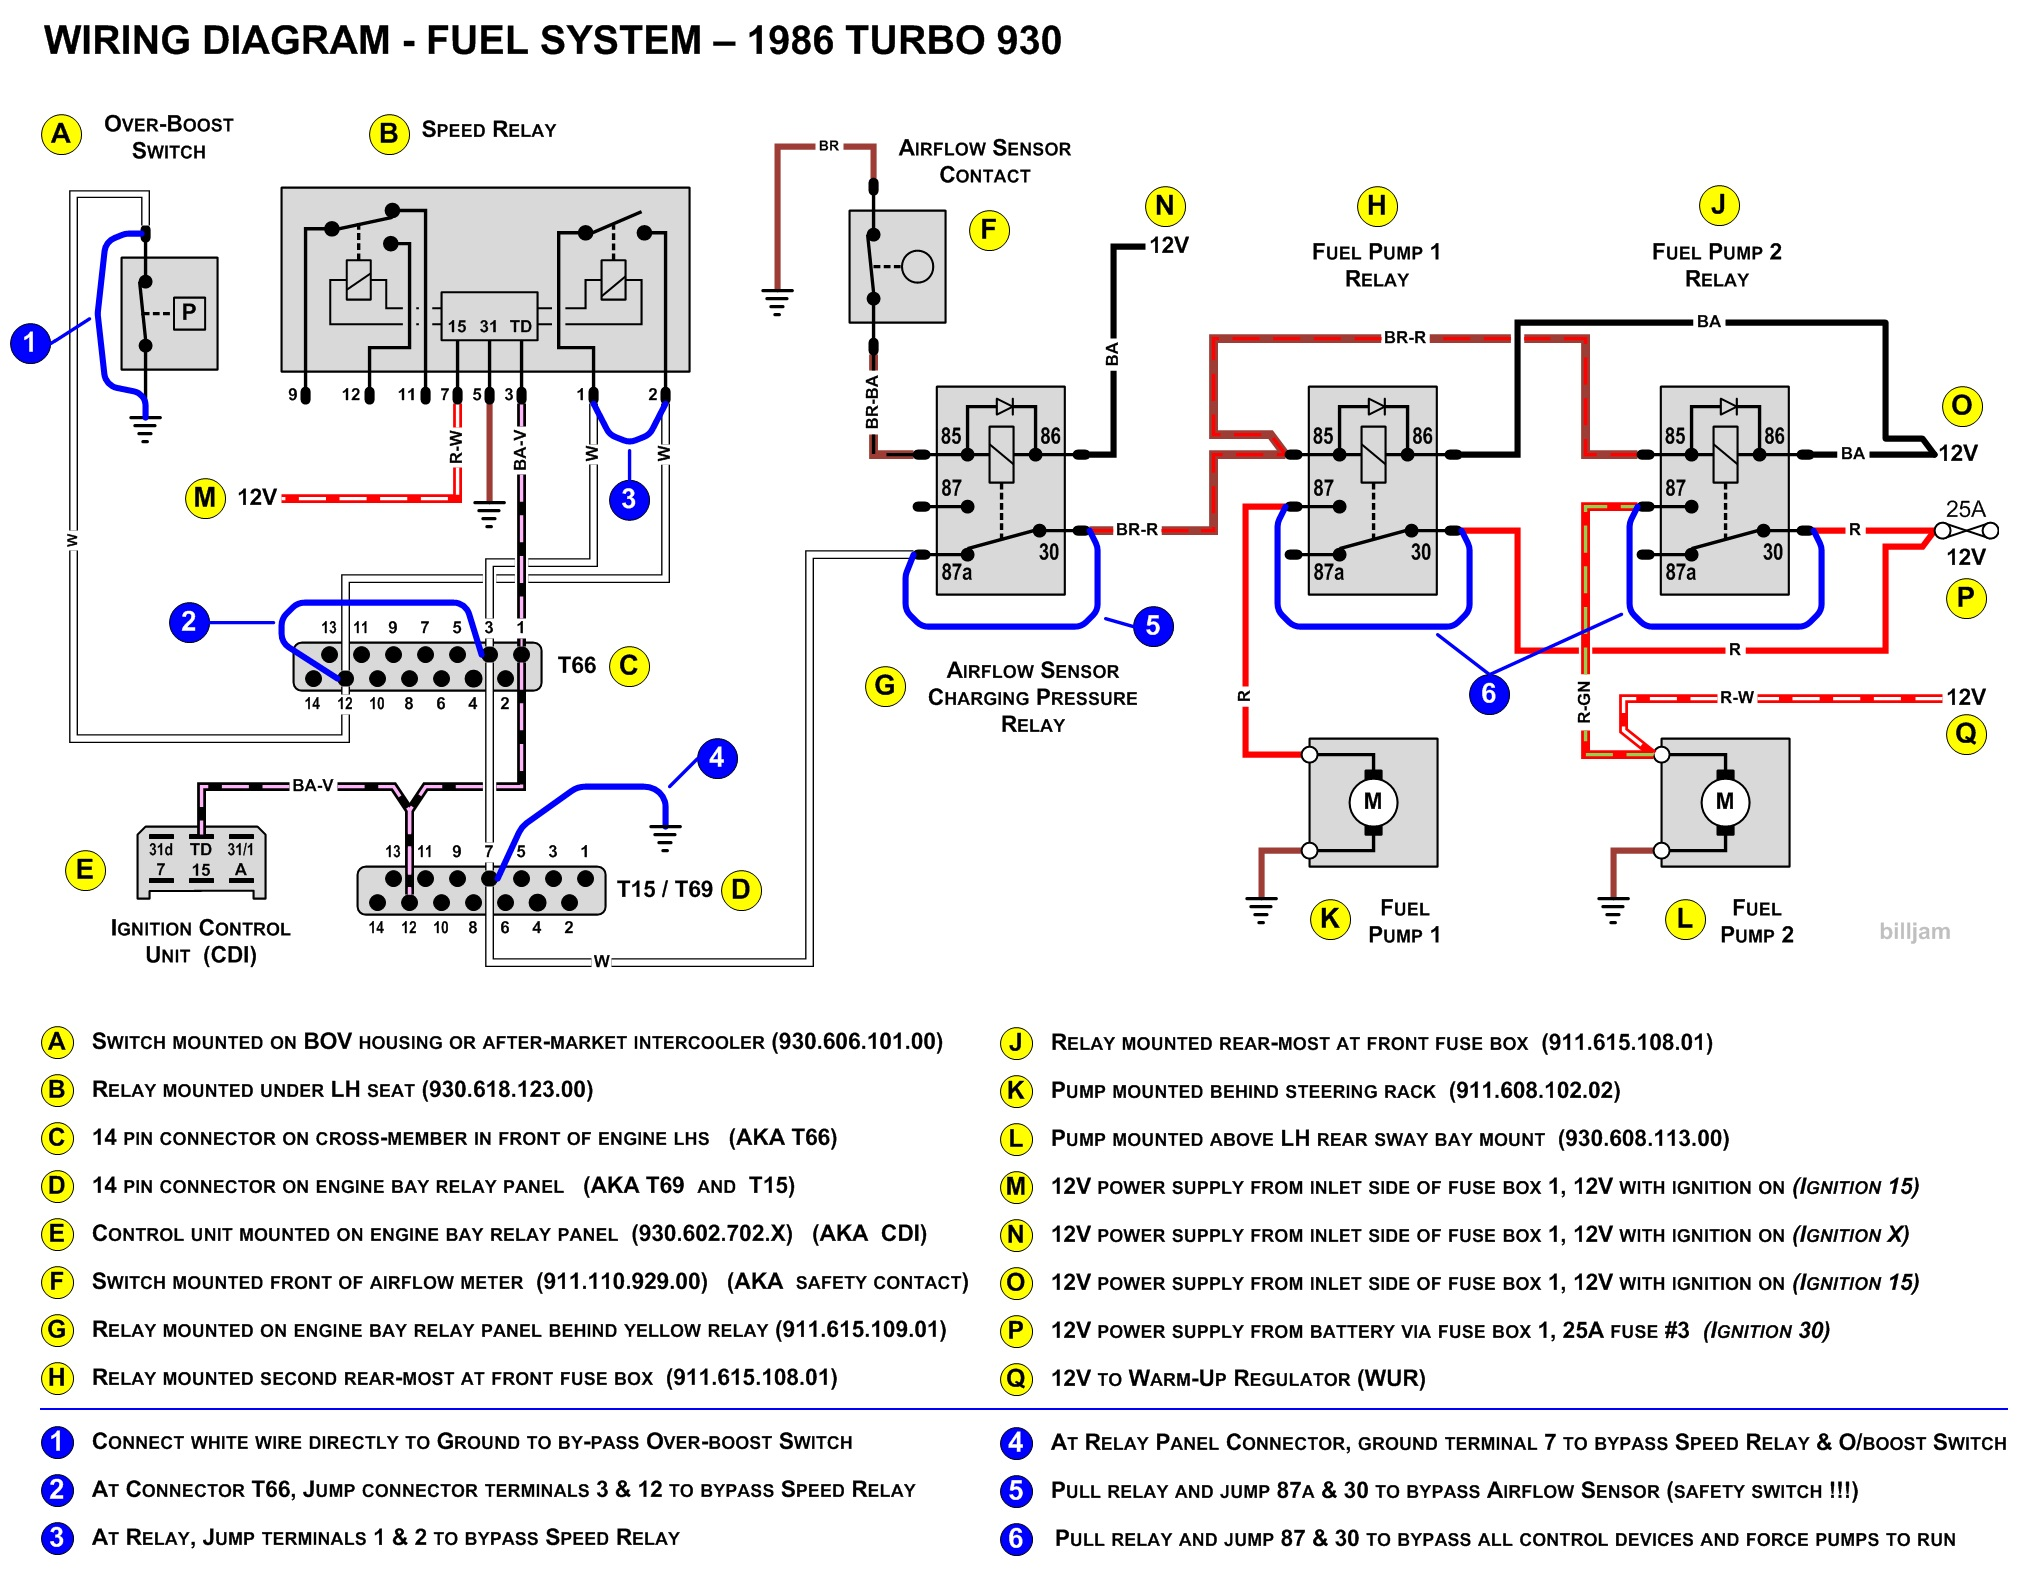 2006 Bmw 525xi Fuse Diagram Trusted Wiring Diagrams X5 Trailer Block And Schematic 2004 530i Box Wire Data Schema U2022 Rh Lemise Co 06 525i E60